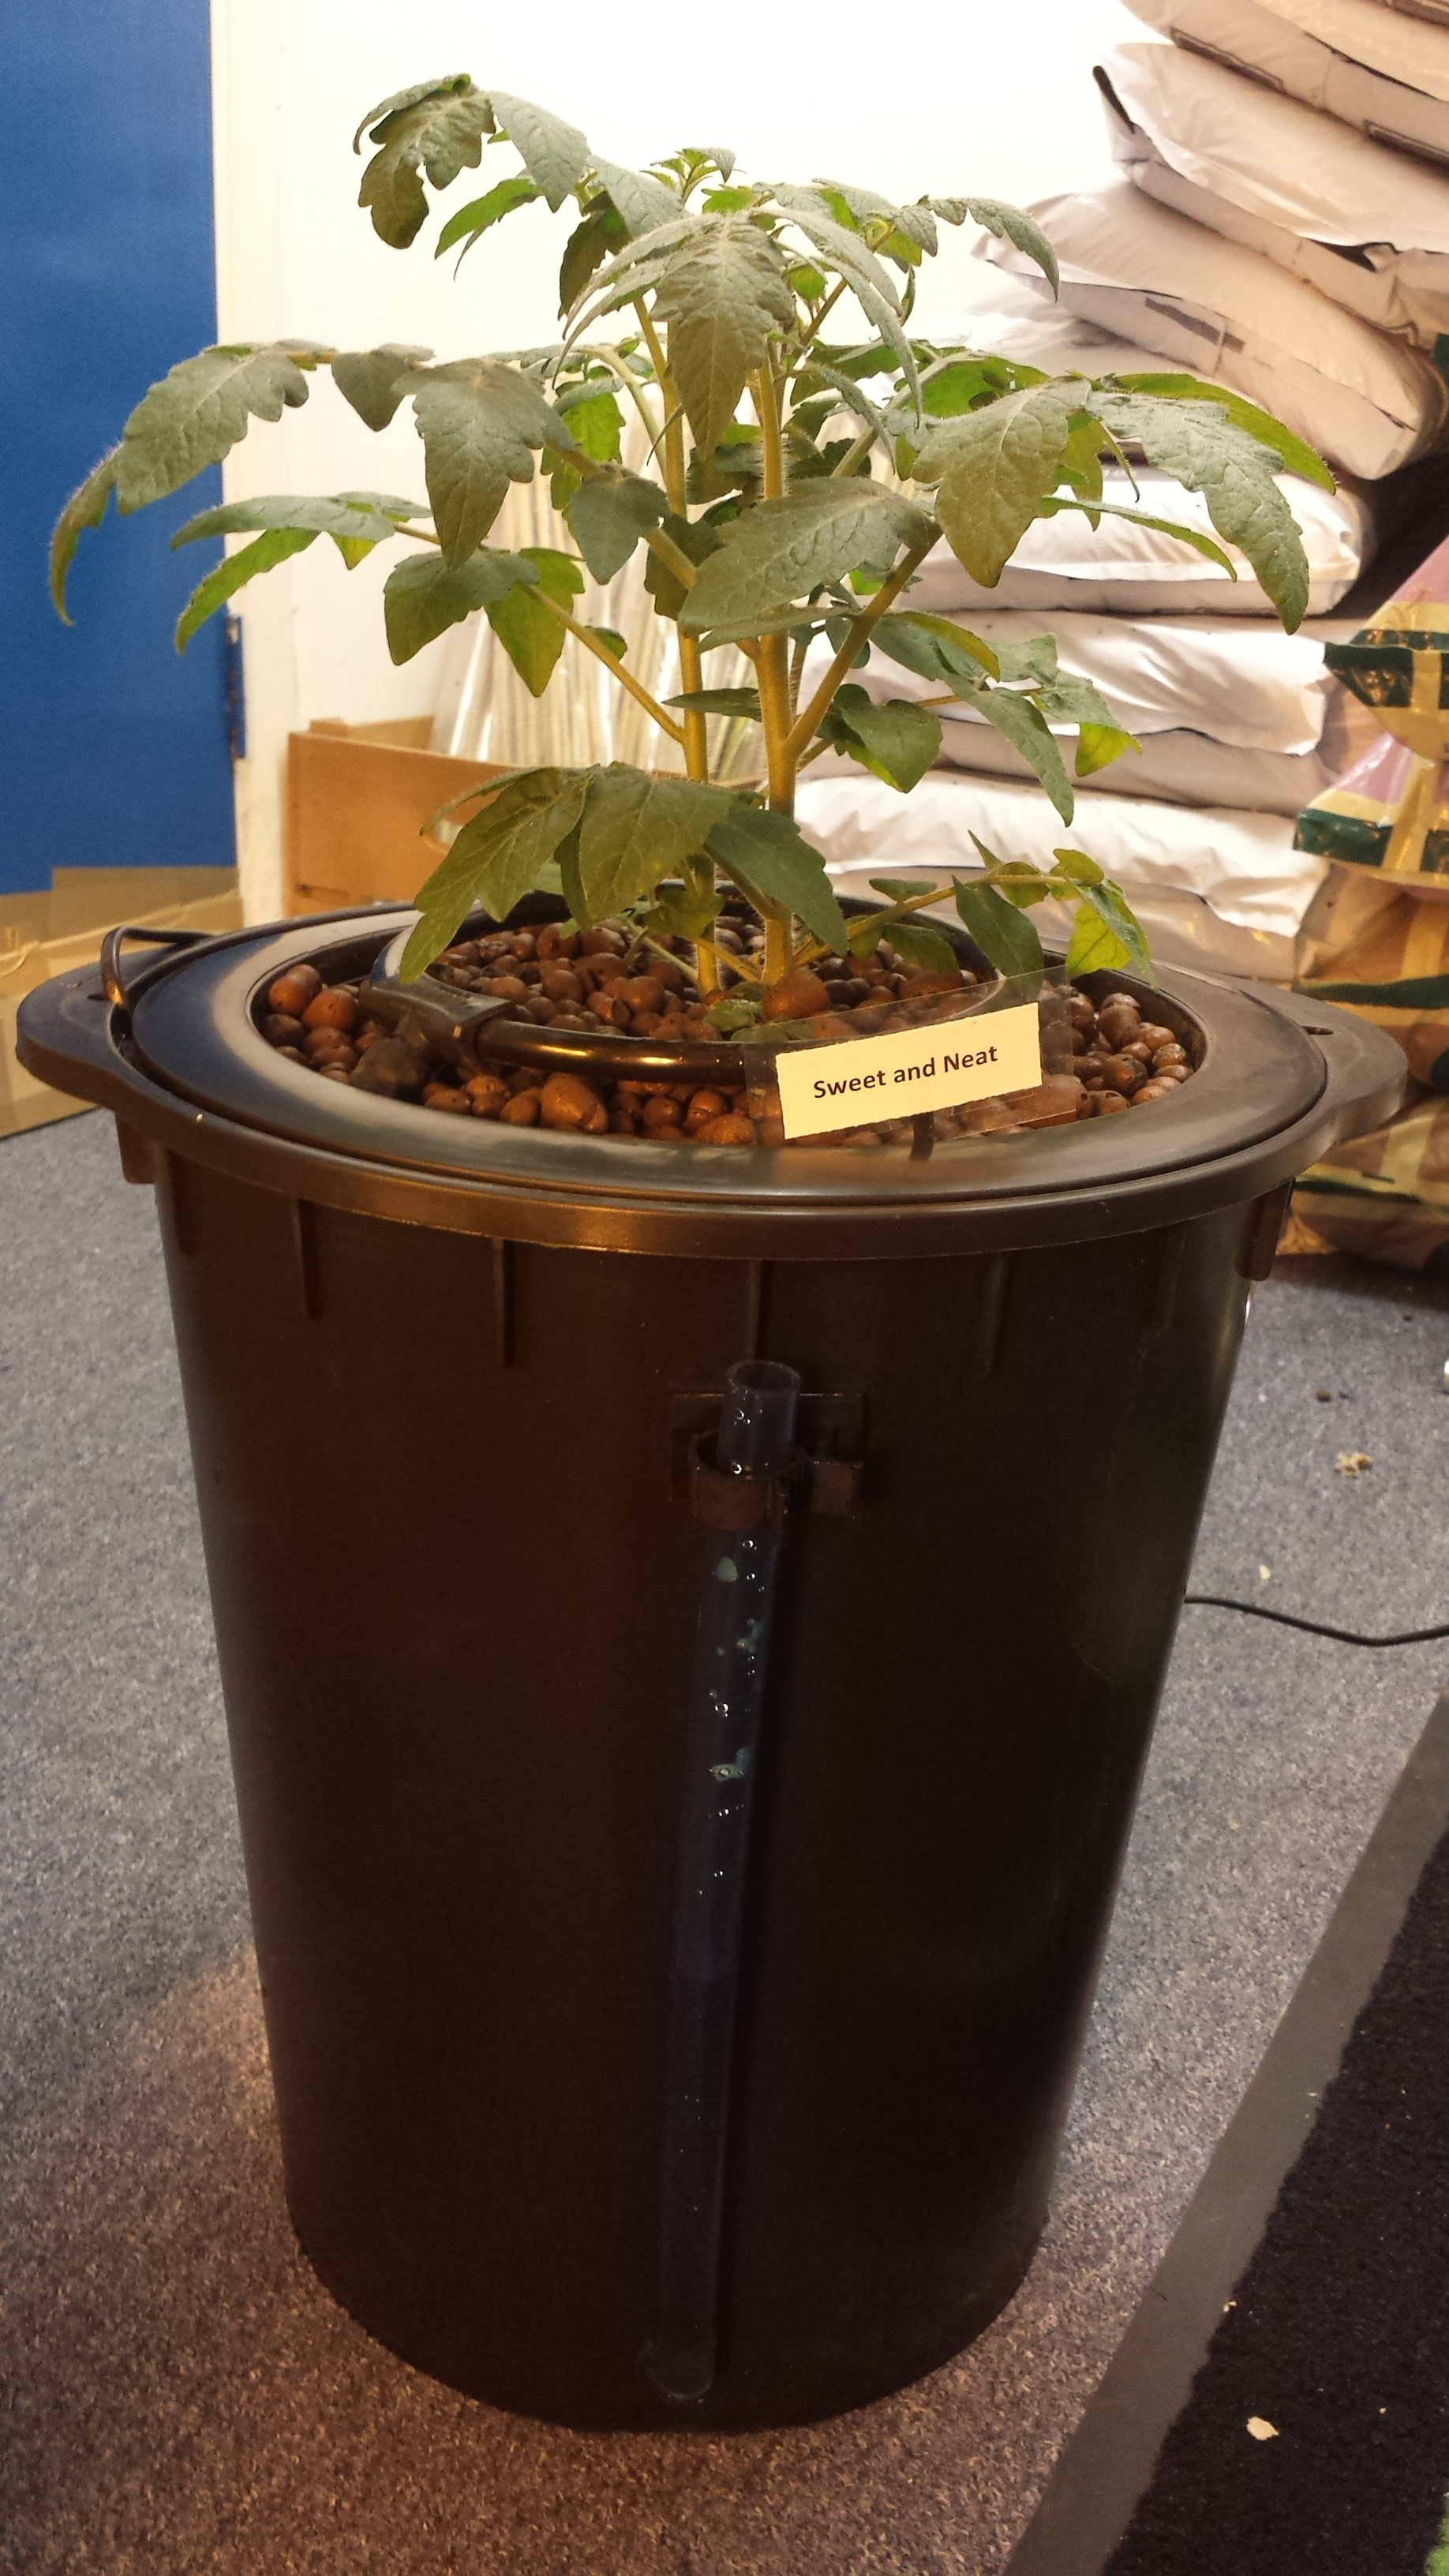 Sweet and Neat Tomatoes - Hydroponics Grow Diary - Latest News from ...